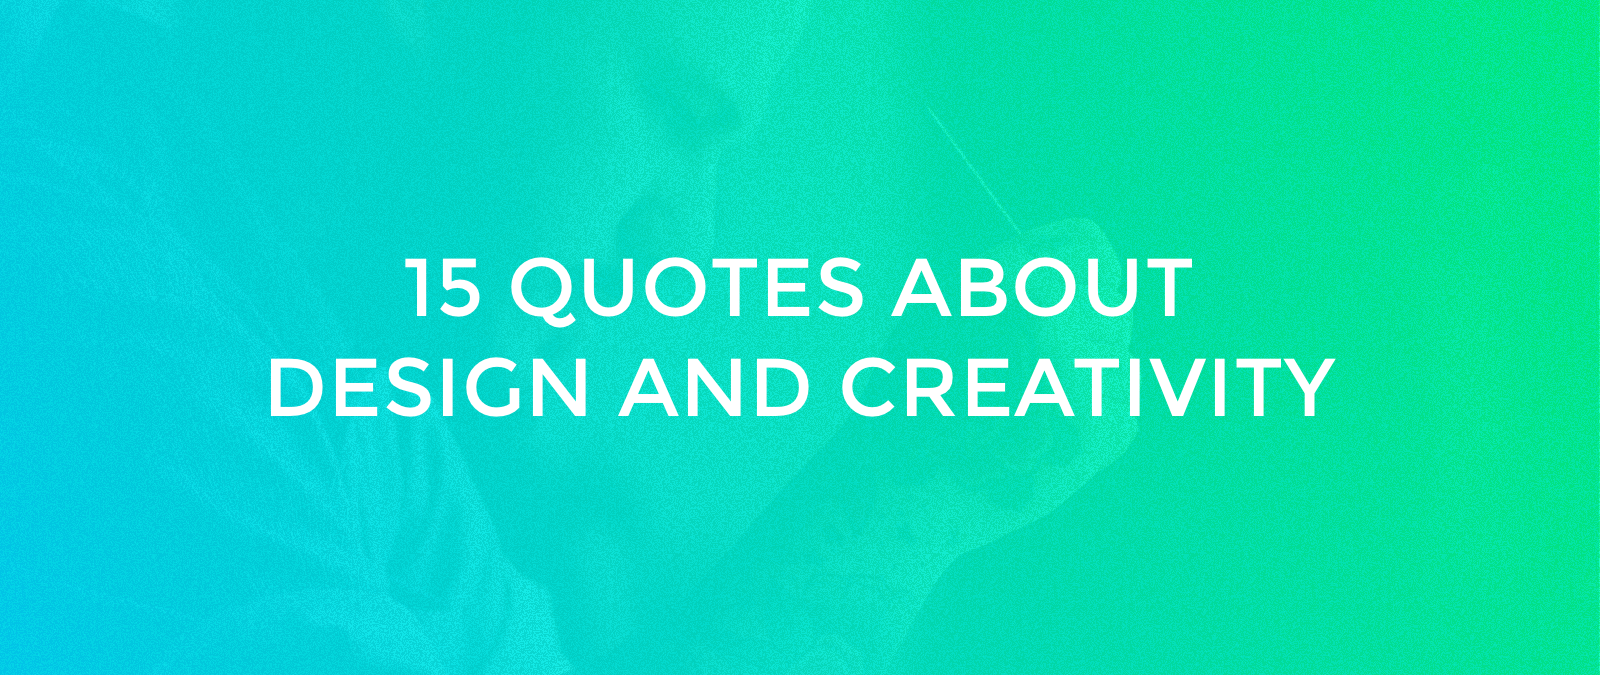 Quotes On Creativity Unique 15 Quotes About Design And Creativity  Website Elements  Pinterest . Inspiration Design